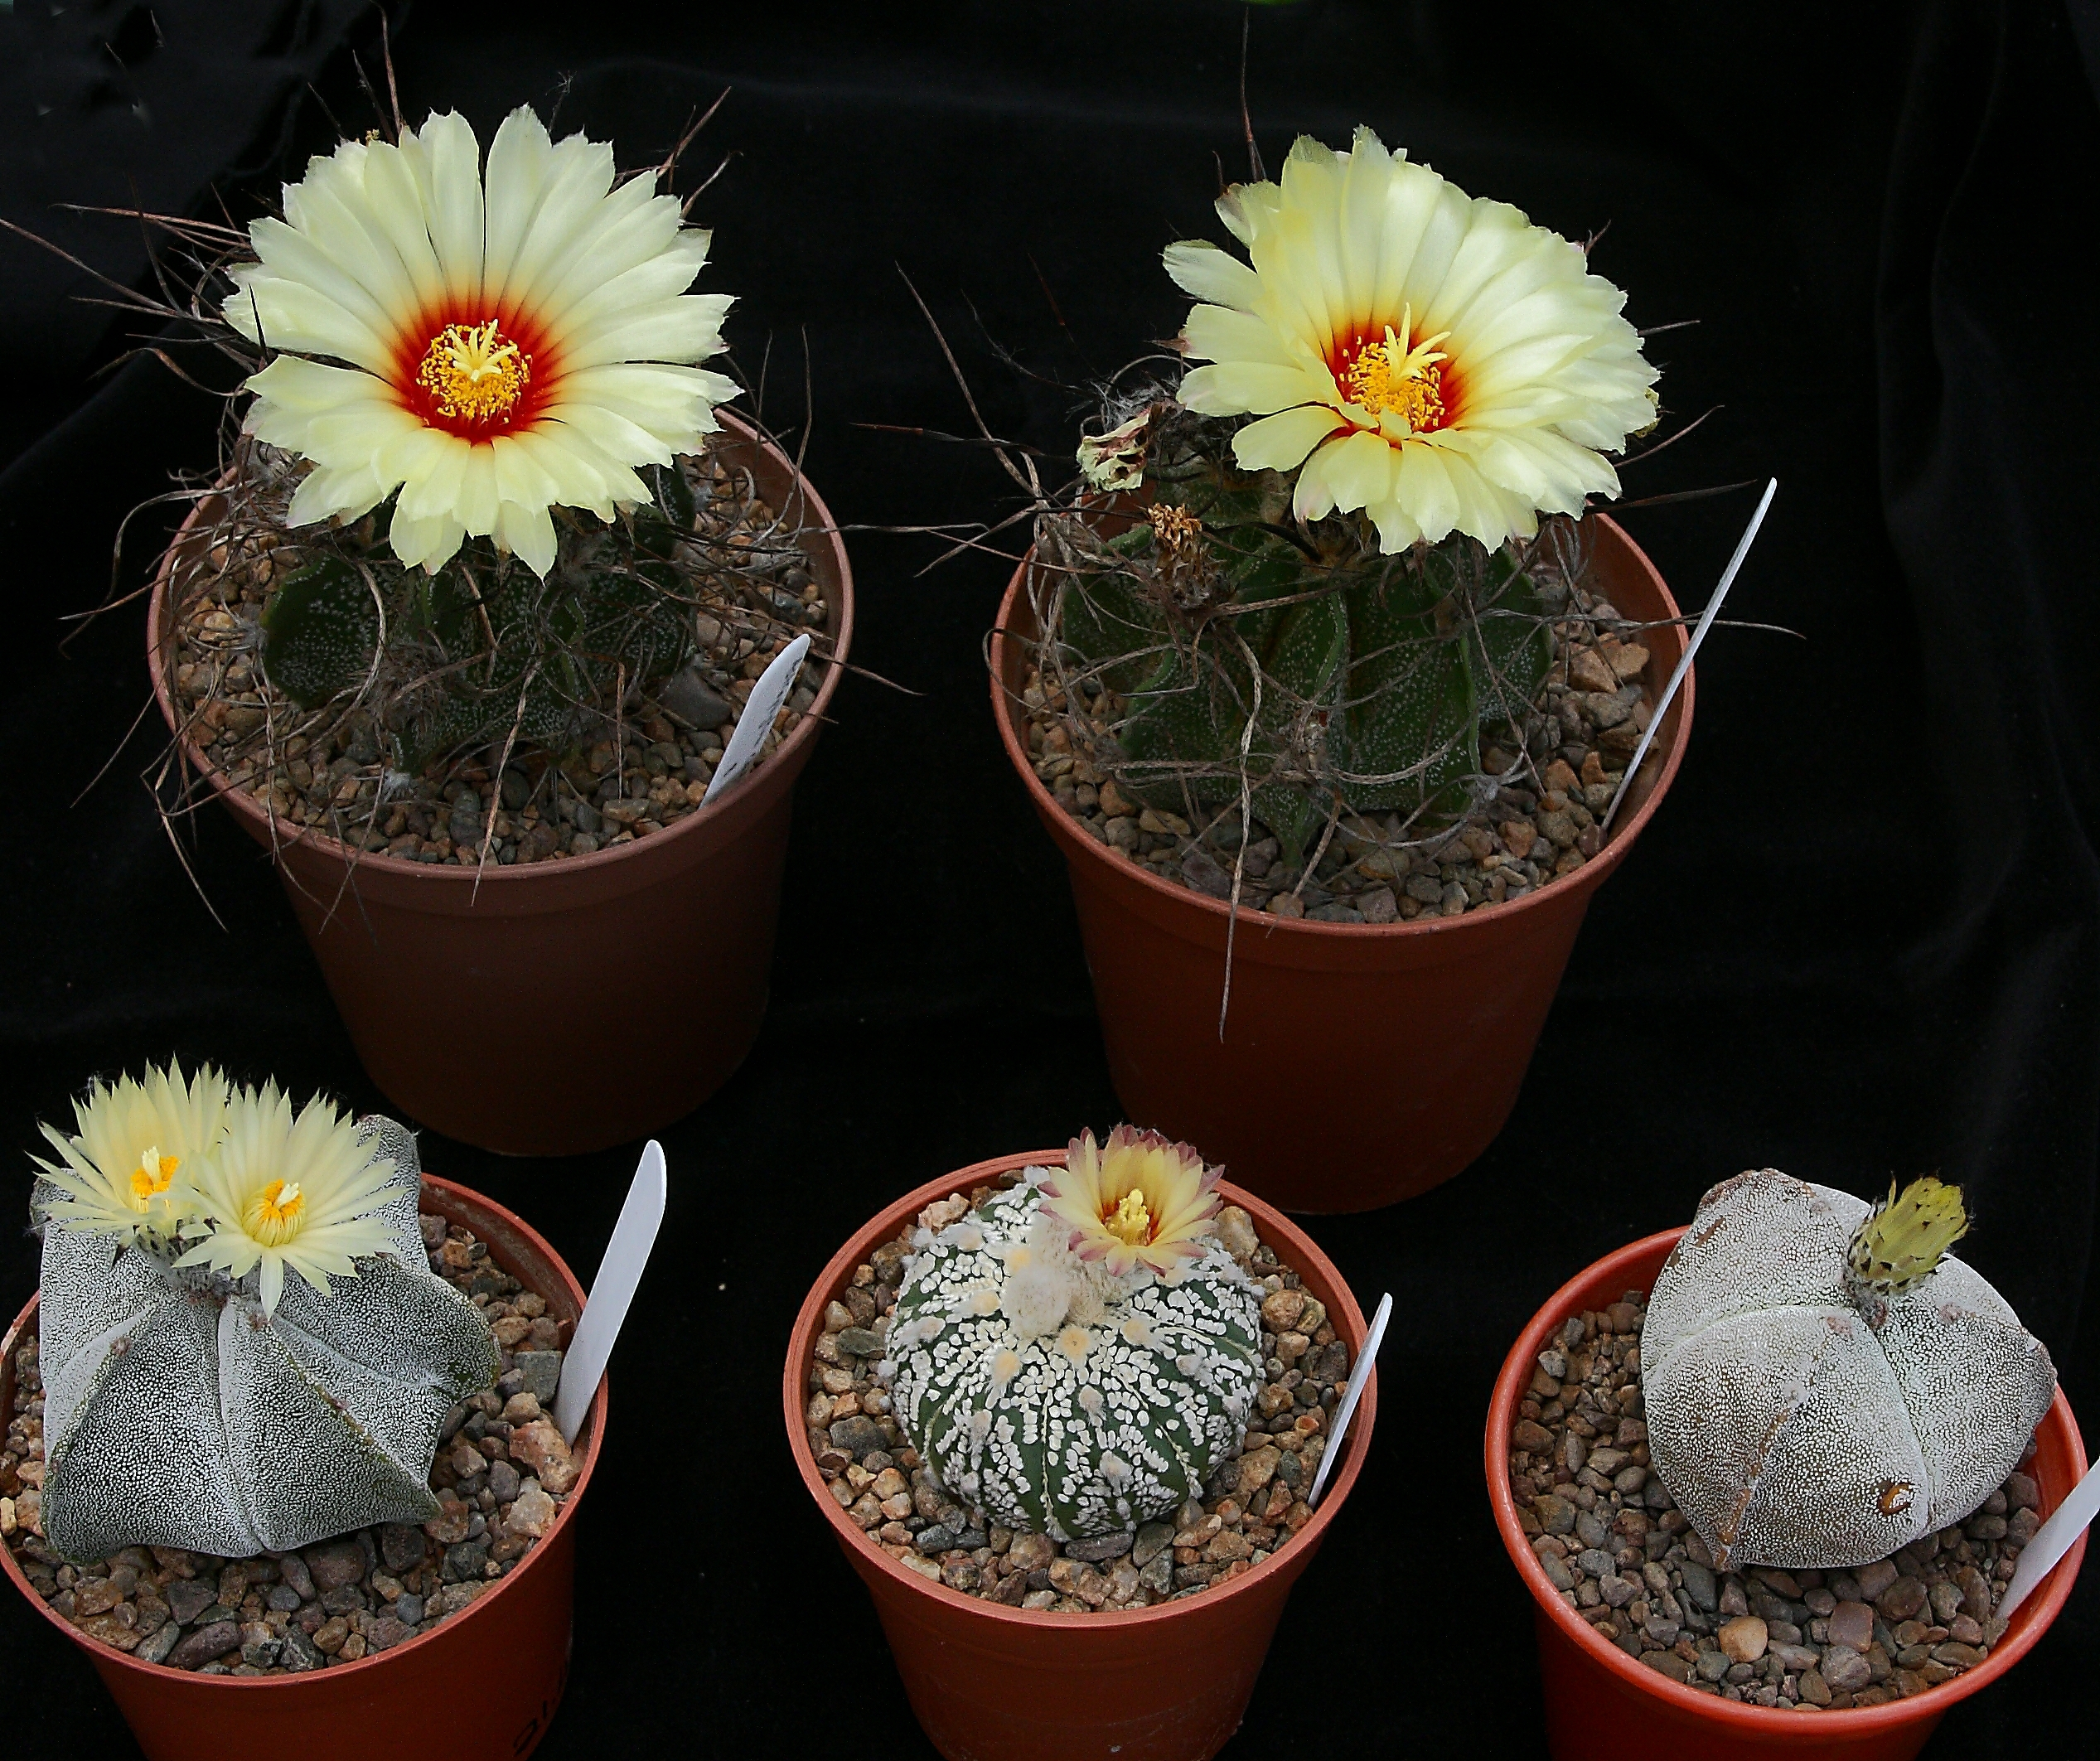 Astrophytum flowers 20 July 2014 (2).JPG